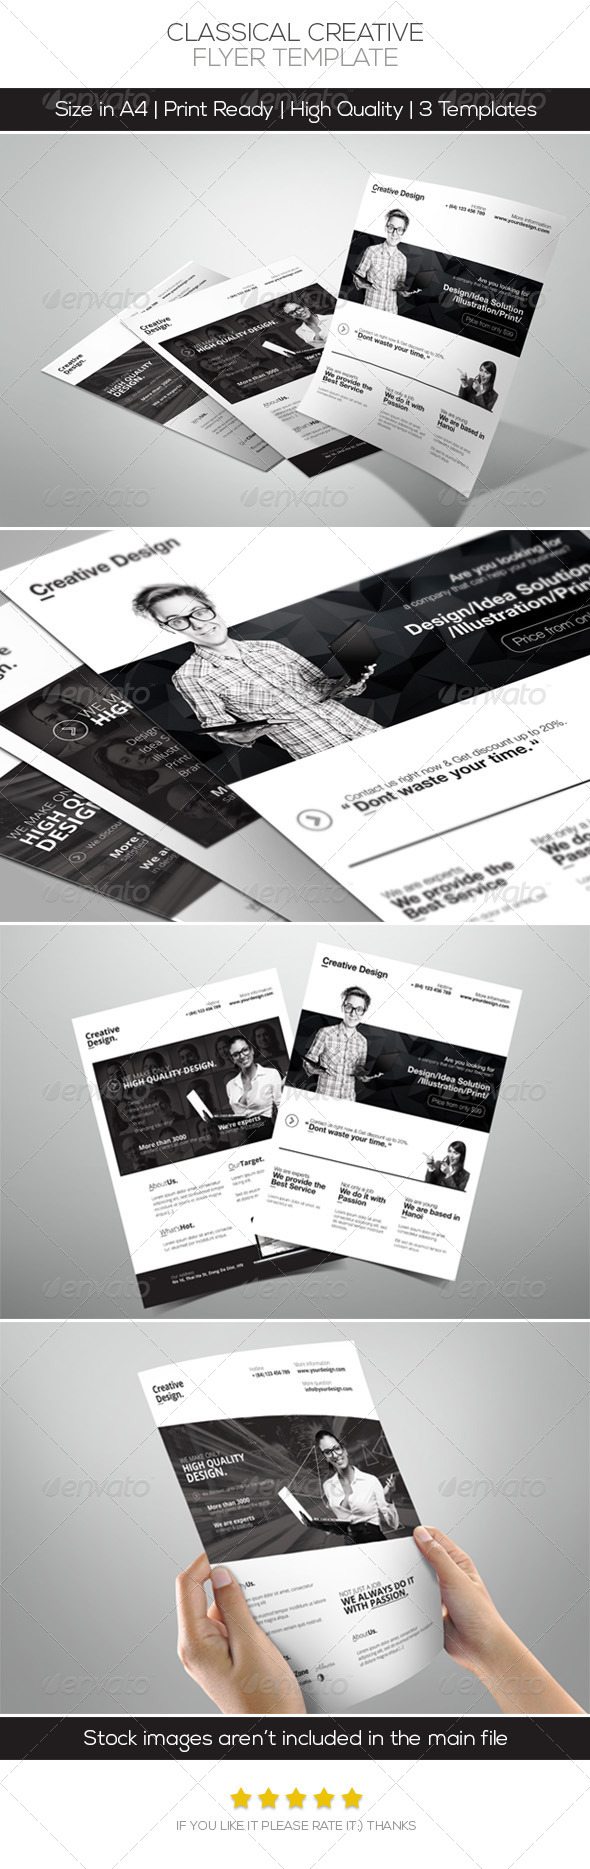 Classical Creative Design Flyer - Corporate Flyers